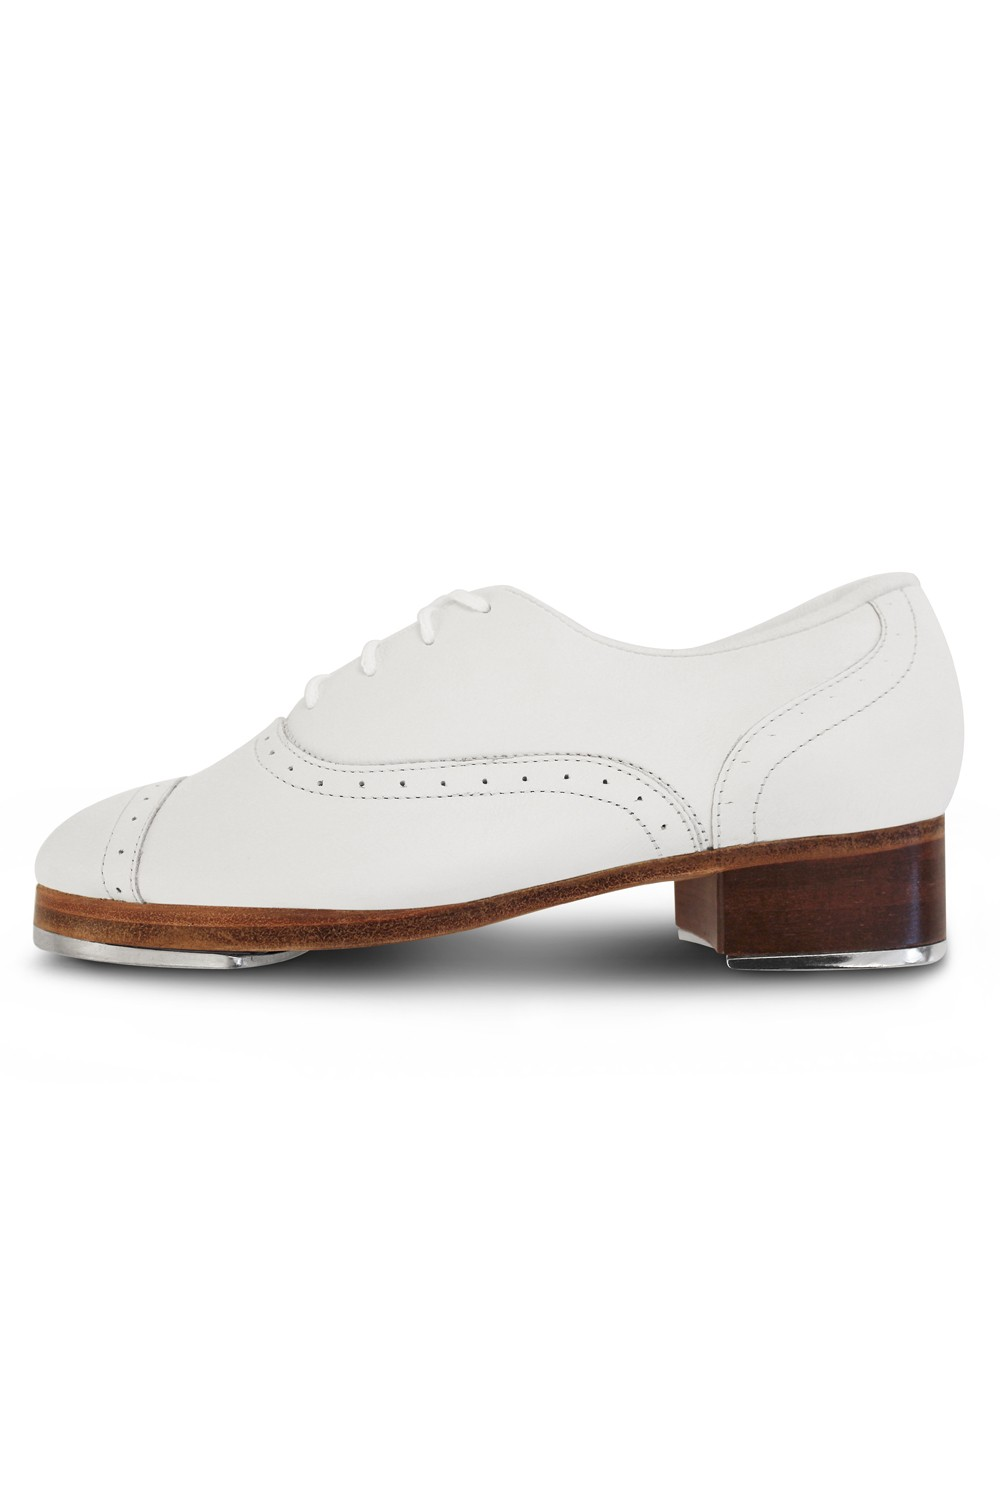 Women's Tap Shoes